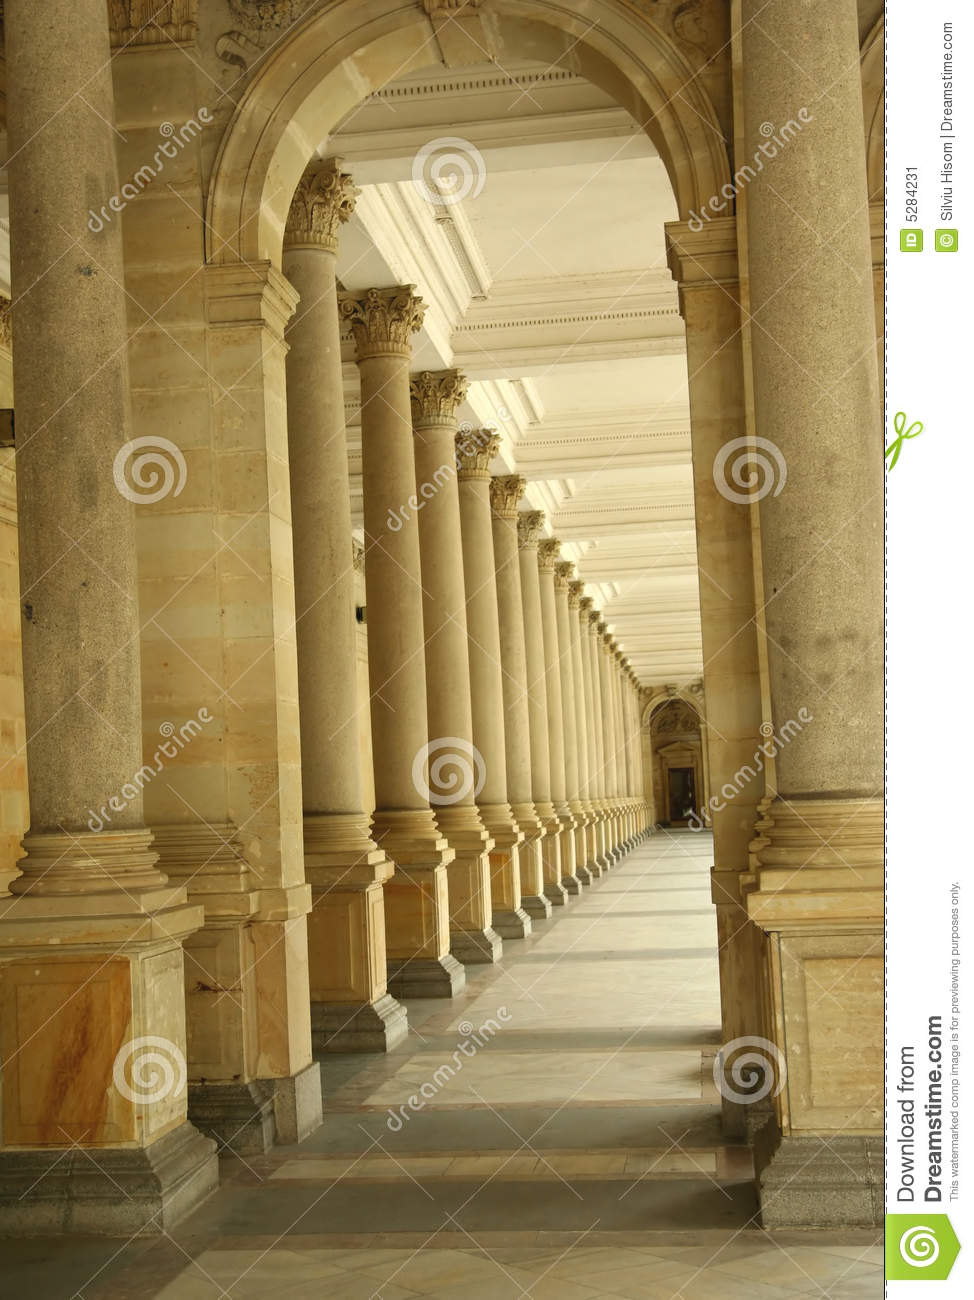 Abstract Fall Wallpaper Corridor Of Columns Hallway Stock Image Image 5284231